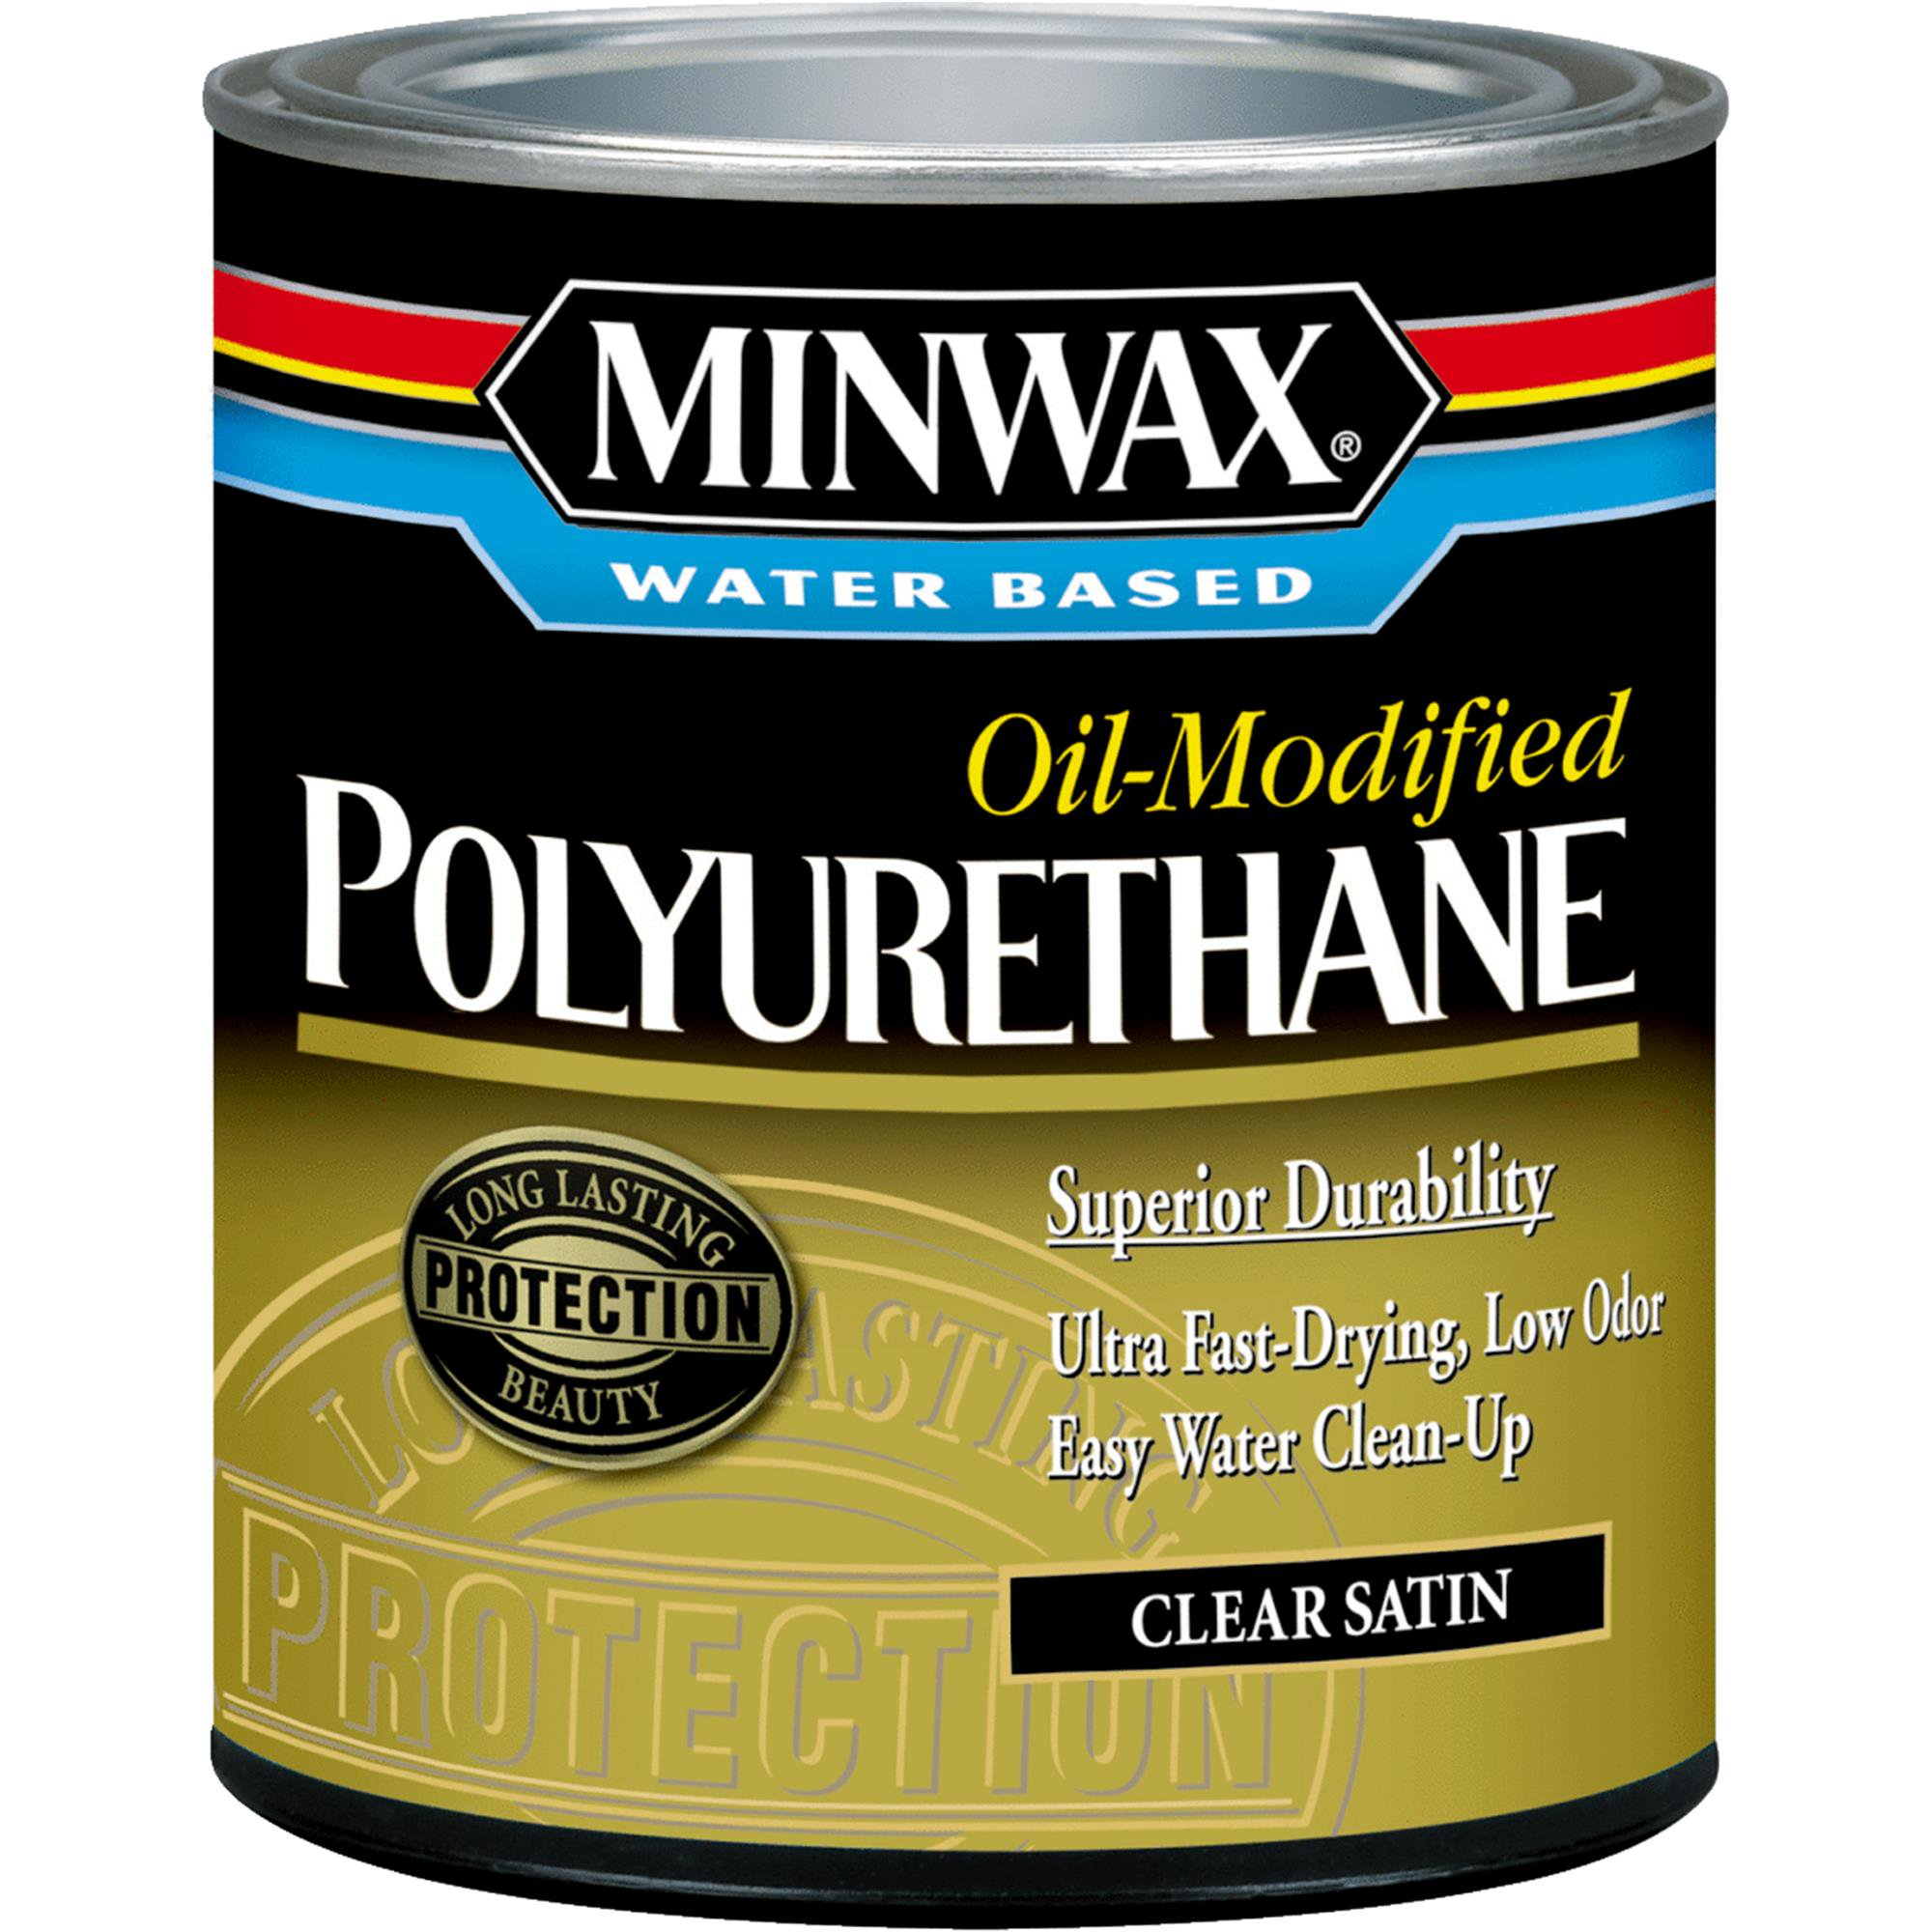 Minwax Water Based Oil-Modified Polyurethane Quart Clear Satin